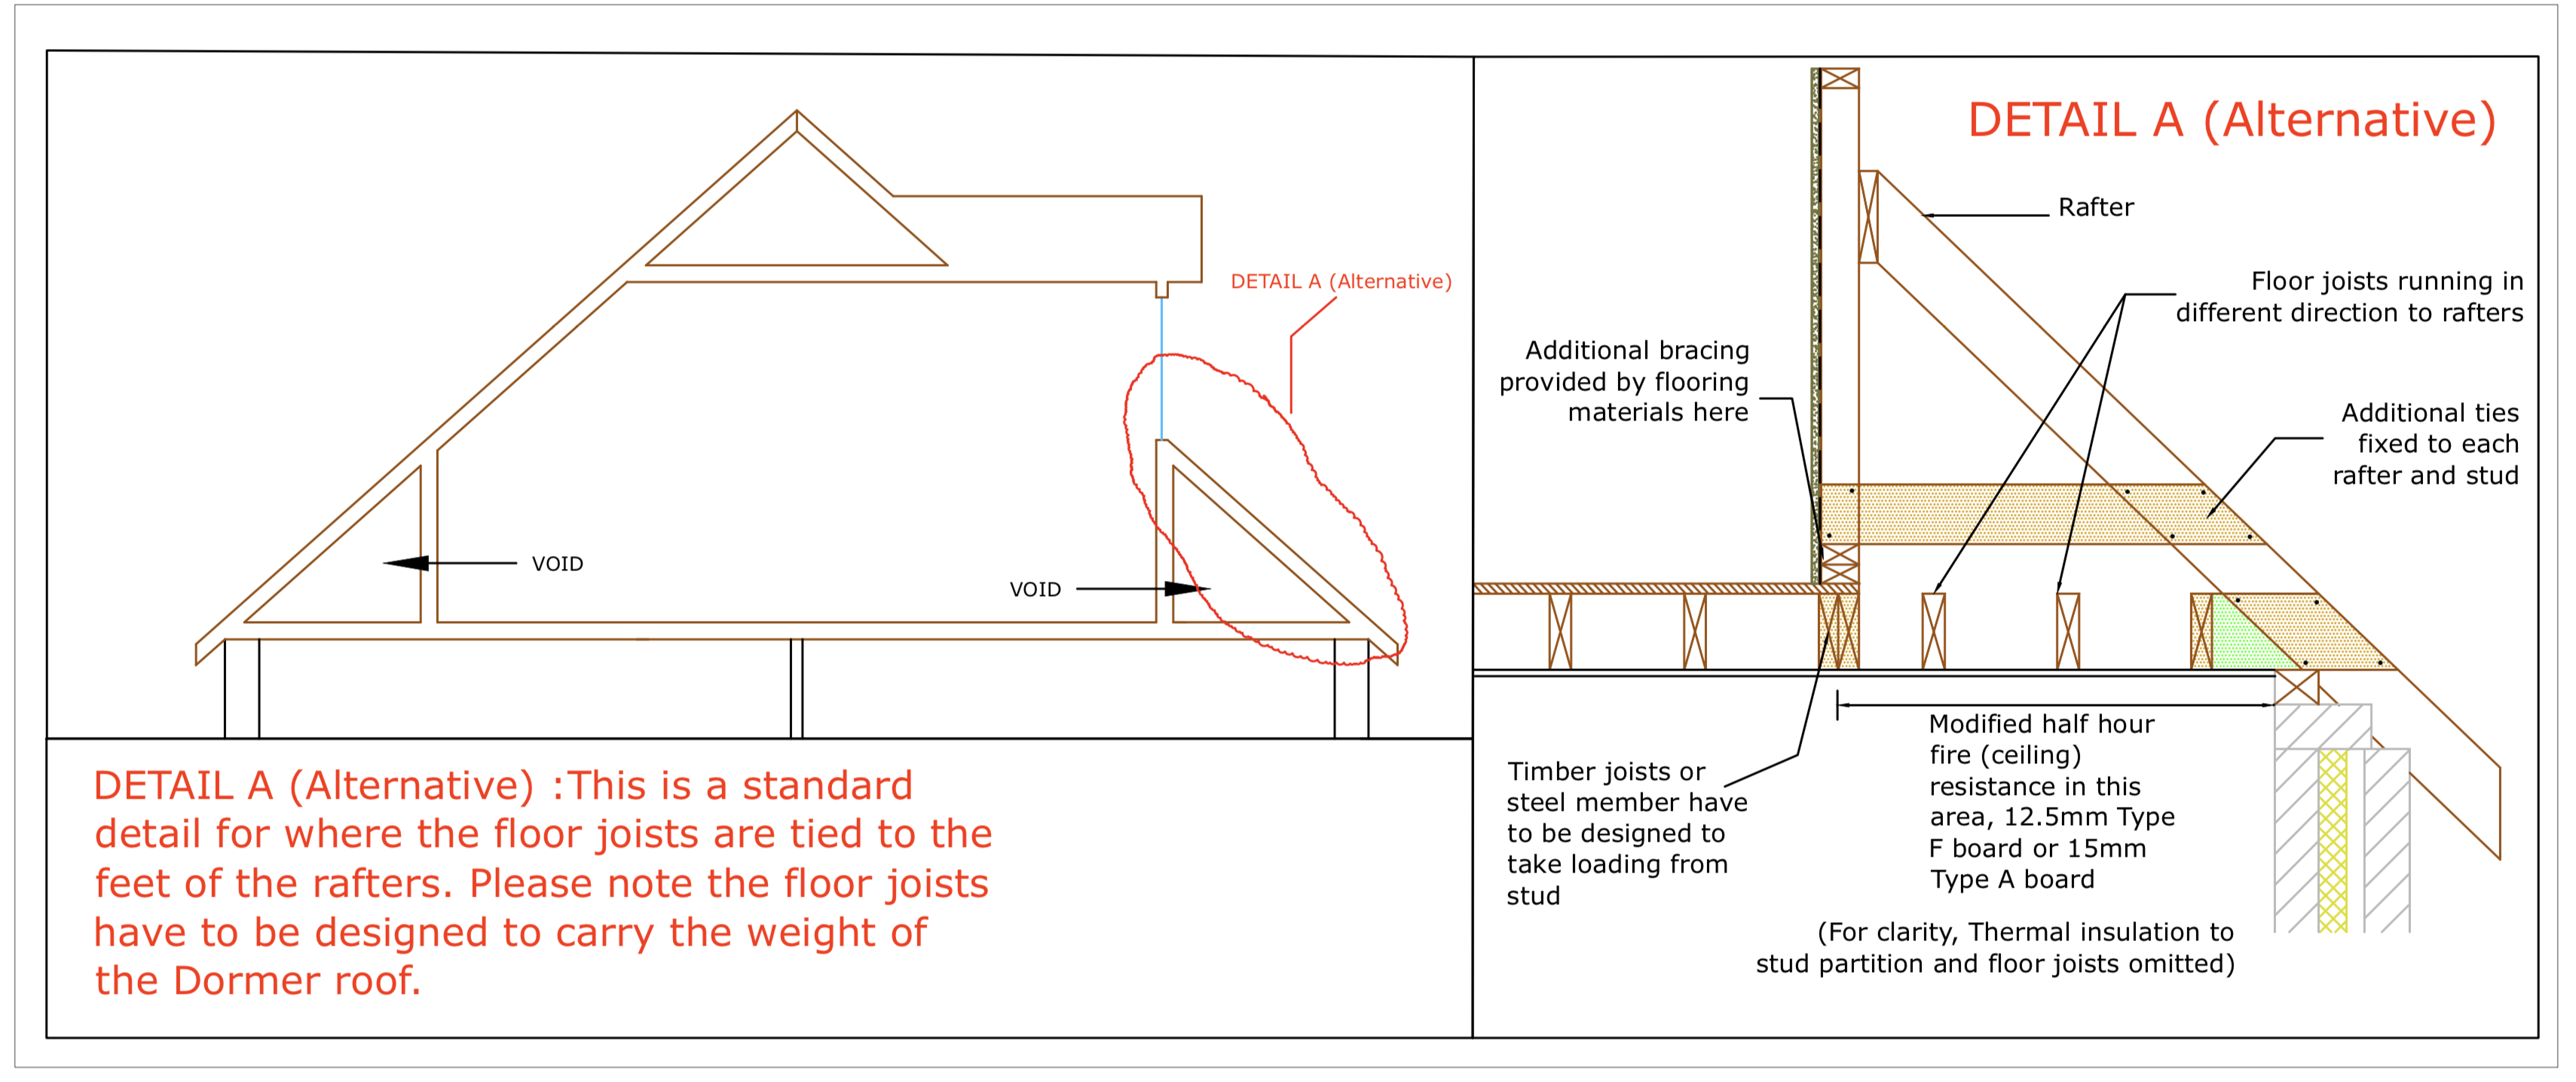 Diagram D56 - Below dormer window - Detail A